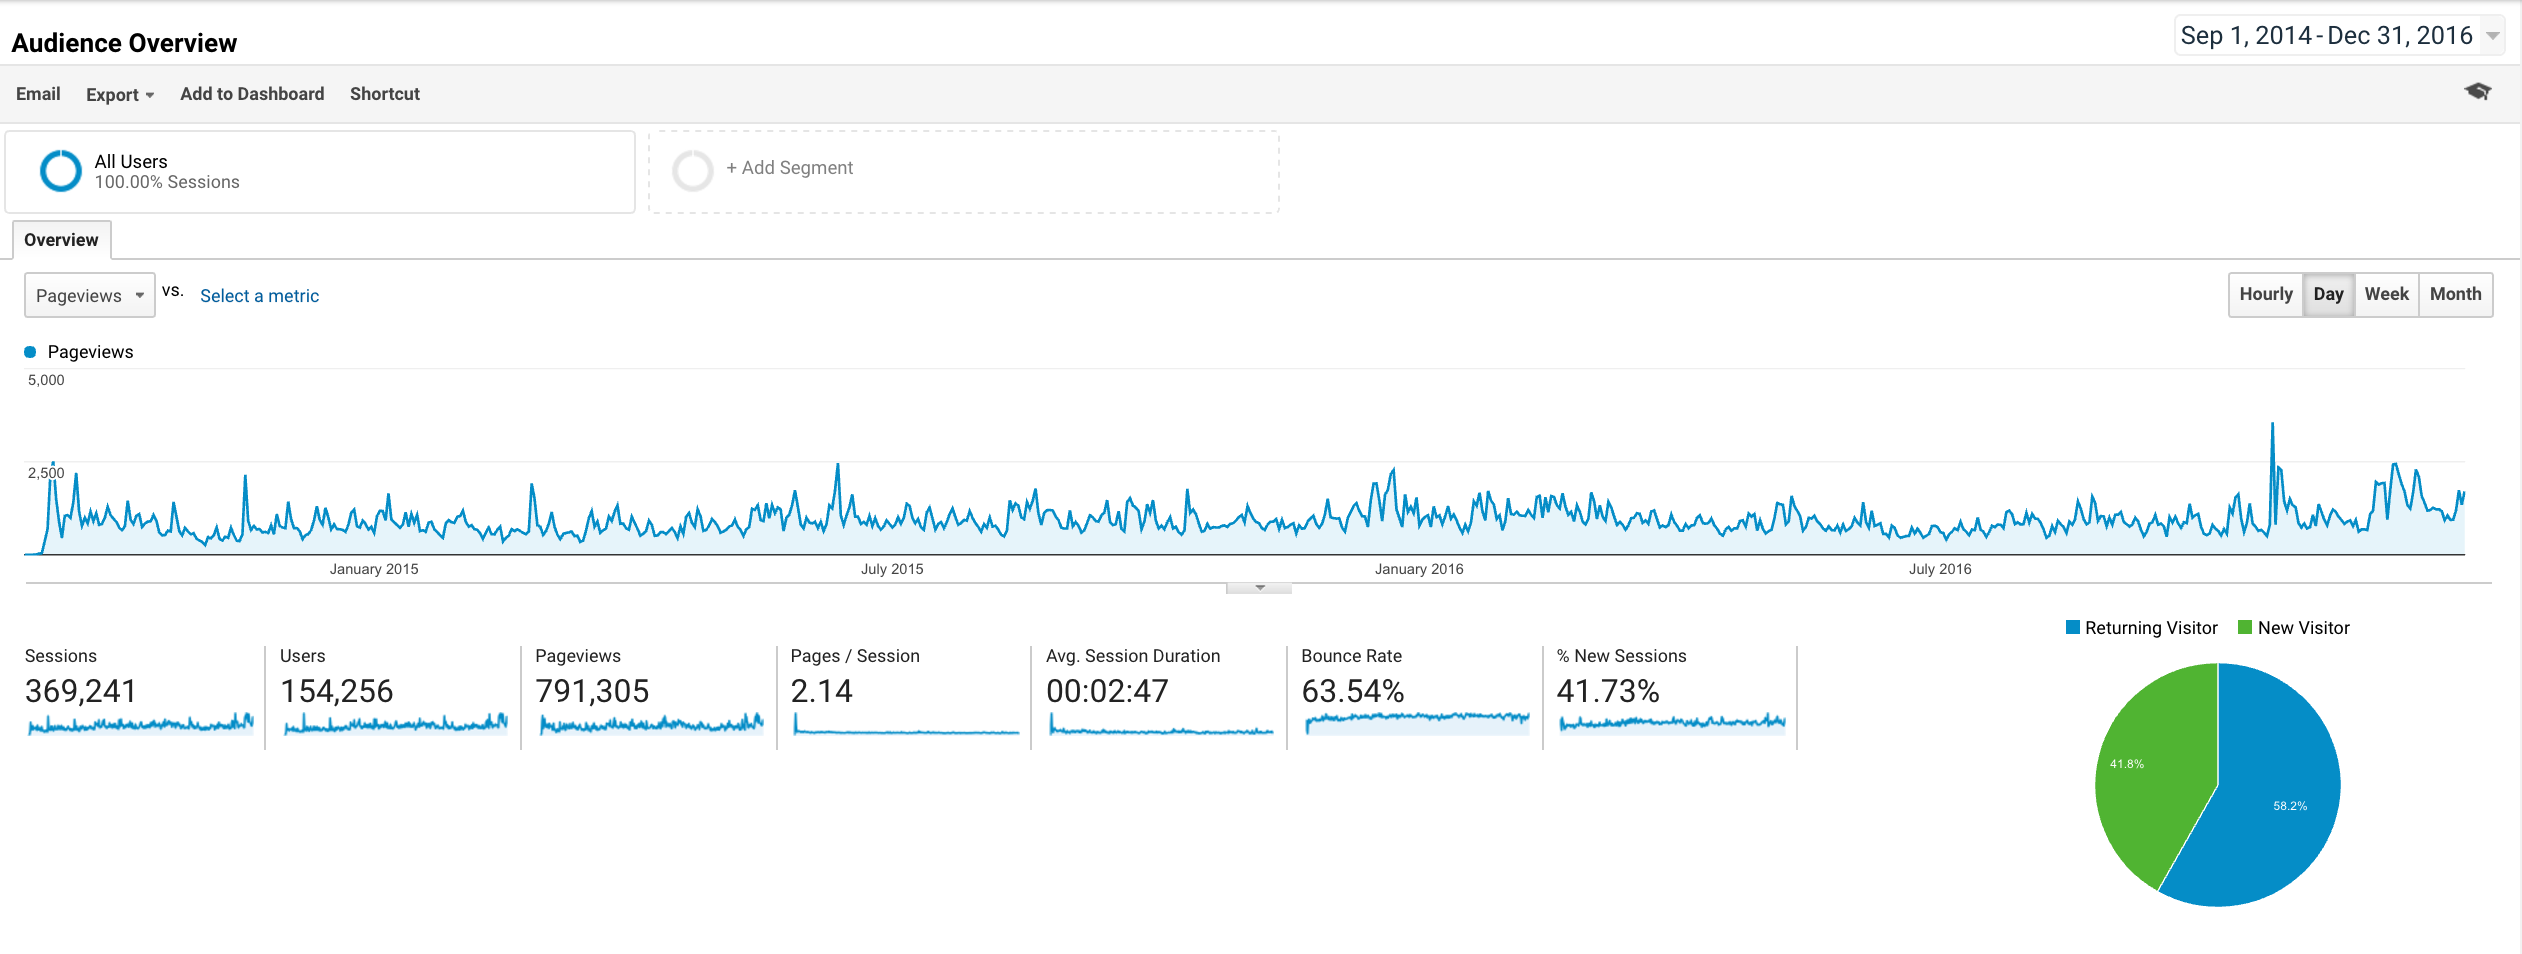 Google Analytics traffic from September 2014 to December 2016 at daily granularity